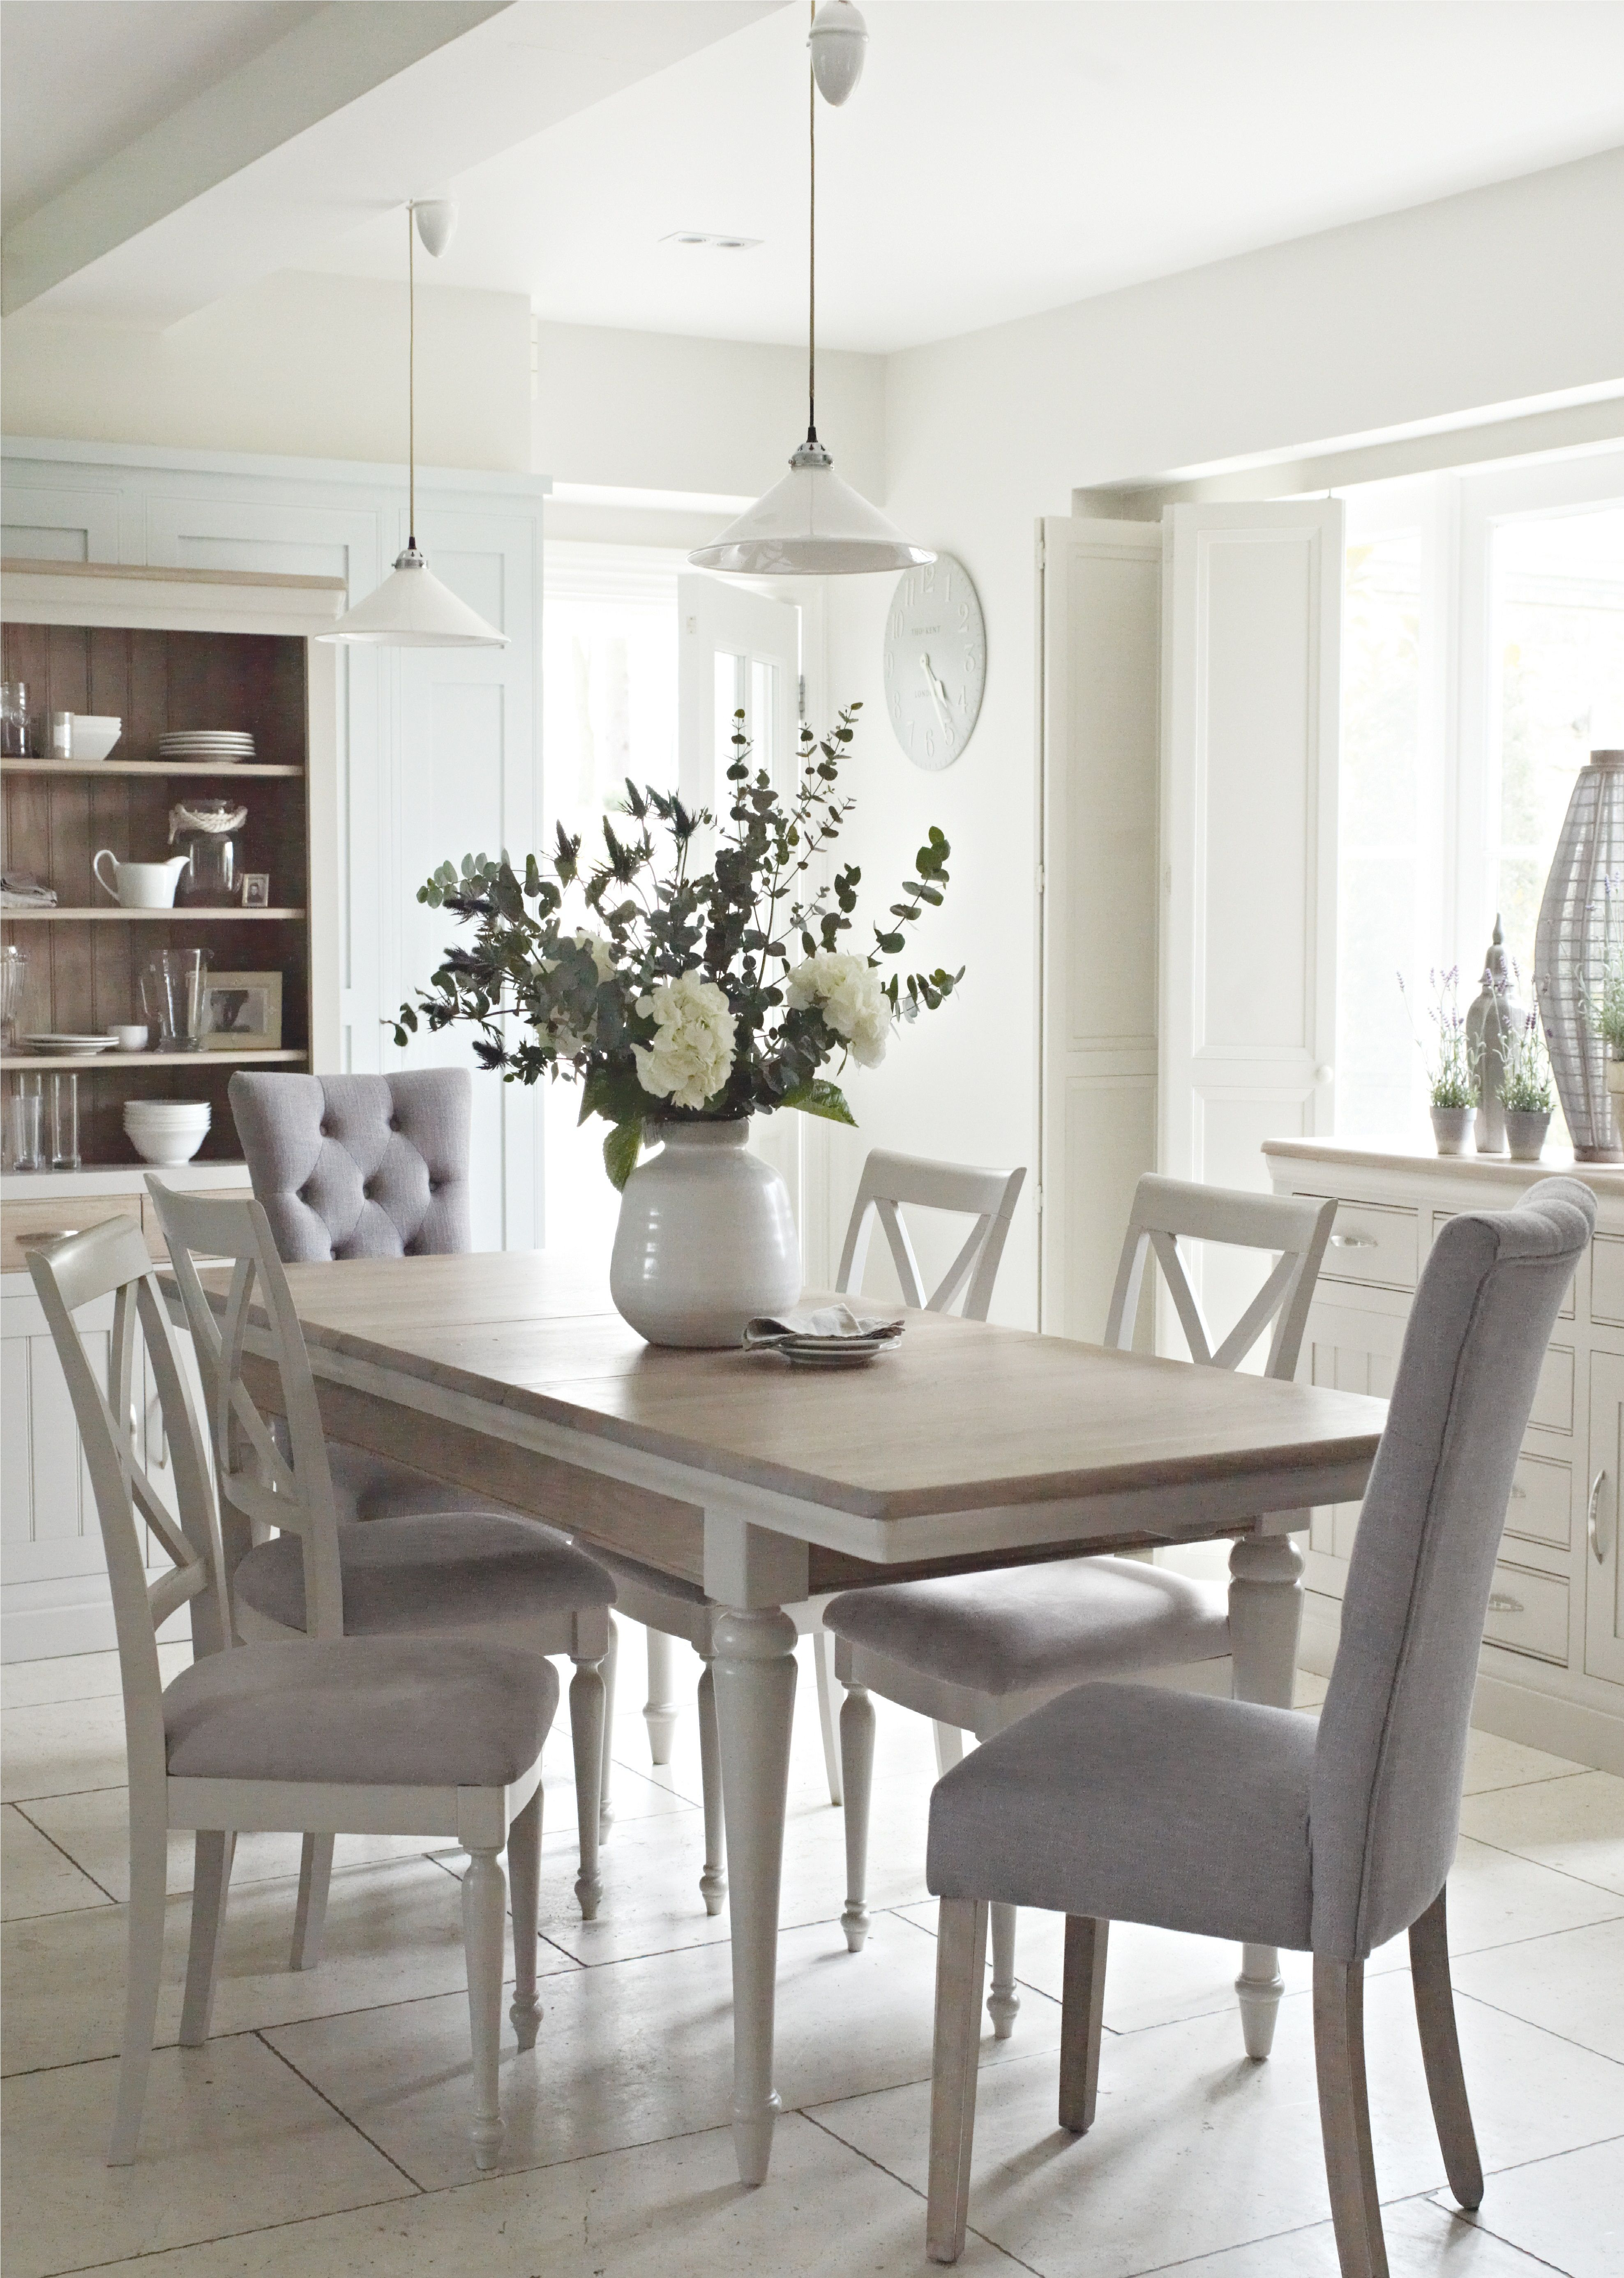 Dinning Room Table And Chairs Discontinued Dining The Classic Bambury Range Just Oozes Country Chic With A Painted Finish Solid Oak Tops It Will Breathe New Life Into Your